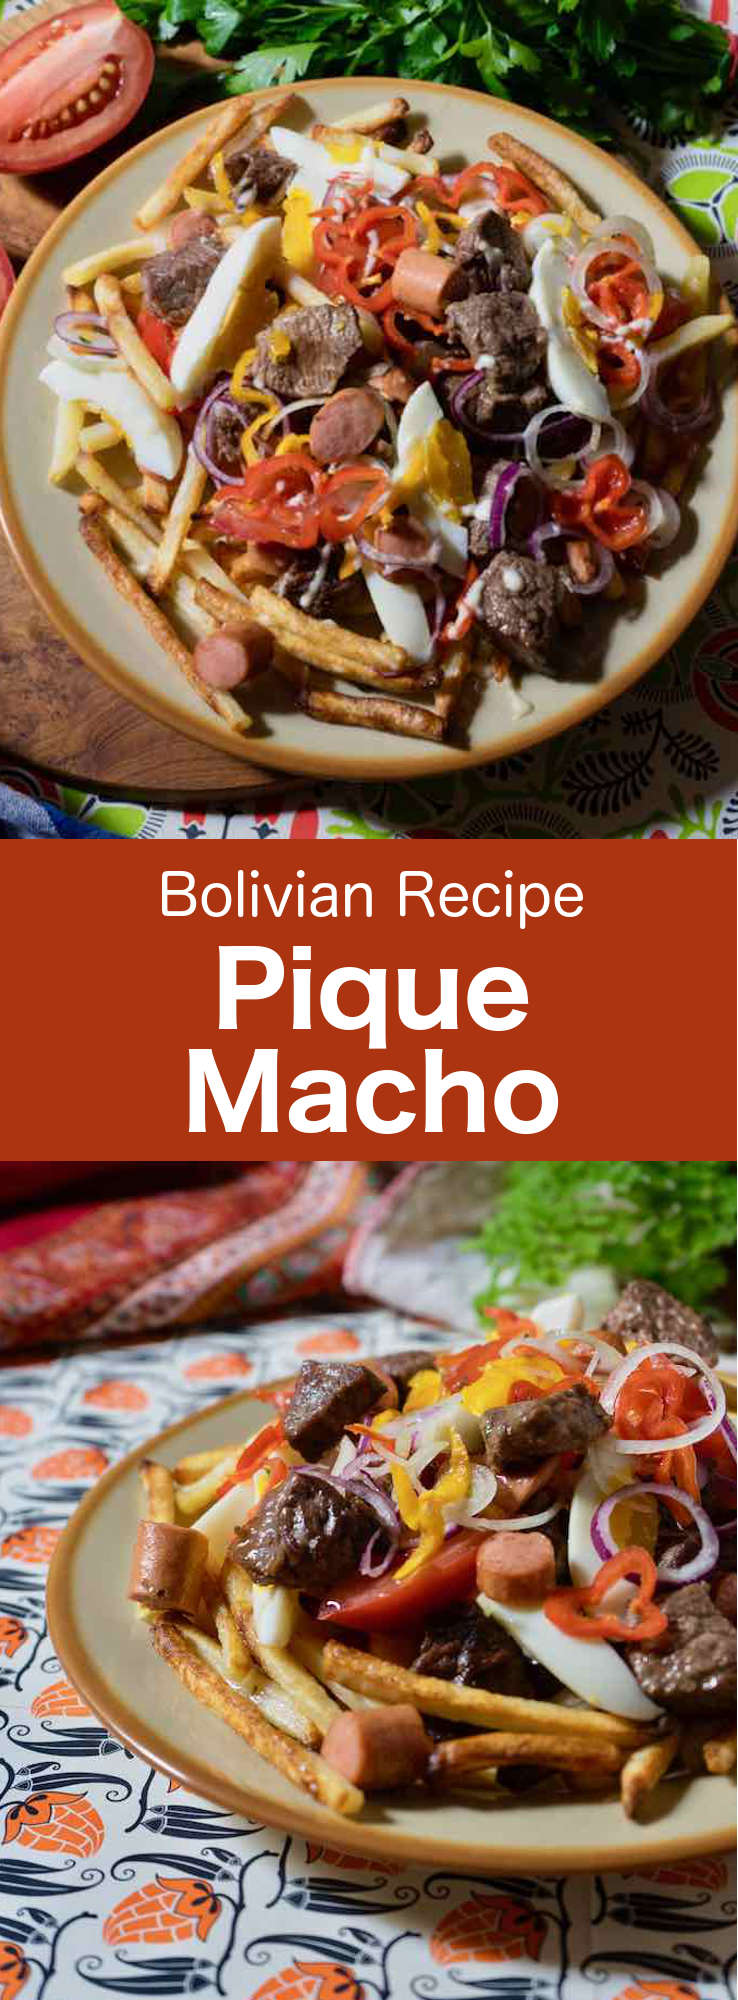 Pique macho is a very popular dish from Cochabamba in Bolivia, made of beef cuts and fried sausages with fries, eggs, chili peppers and tomatoes. #Bolivia #BolivianCuisine #BolivianFood #BolivianRecipe #WorldCuisine #196flavors